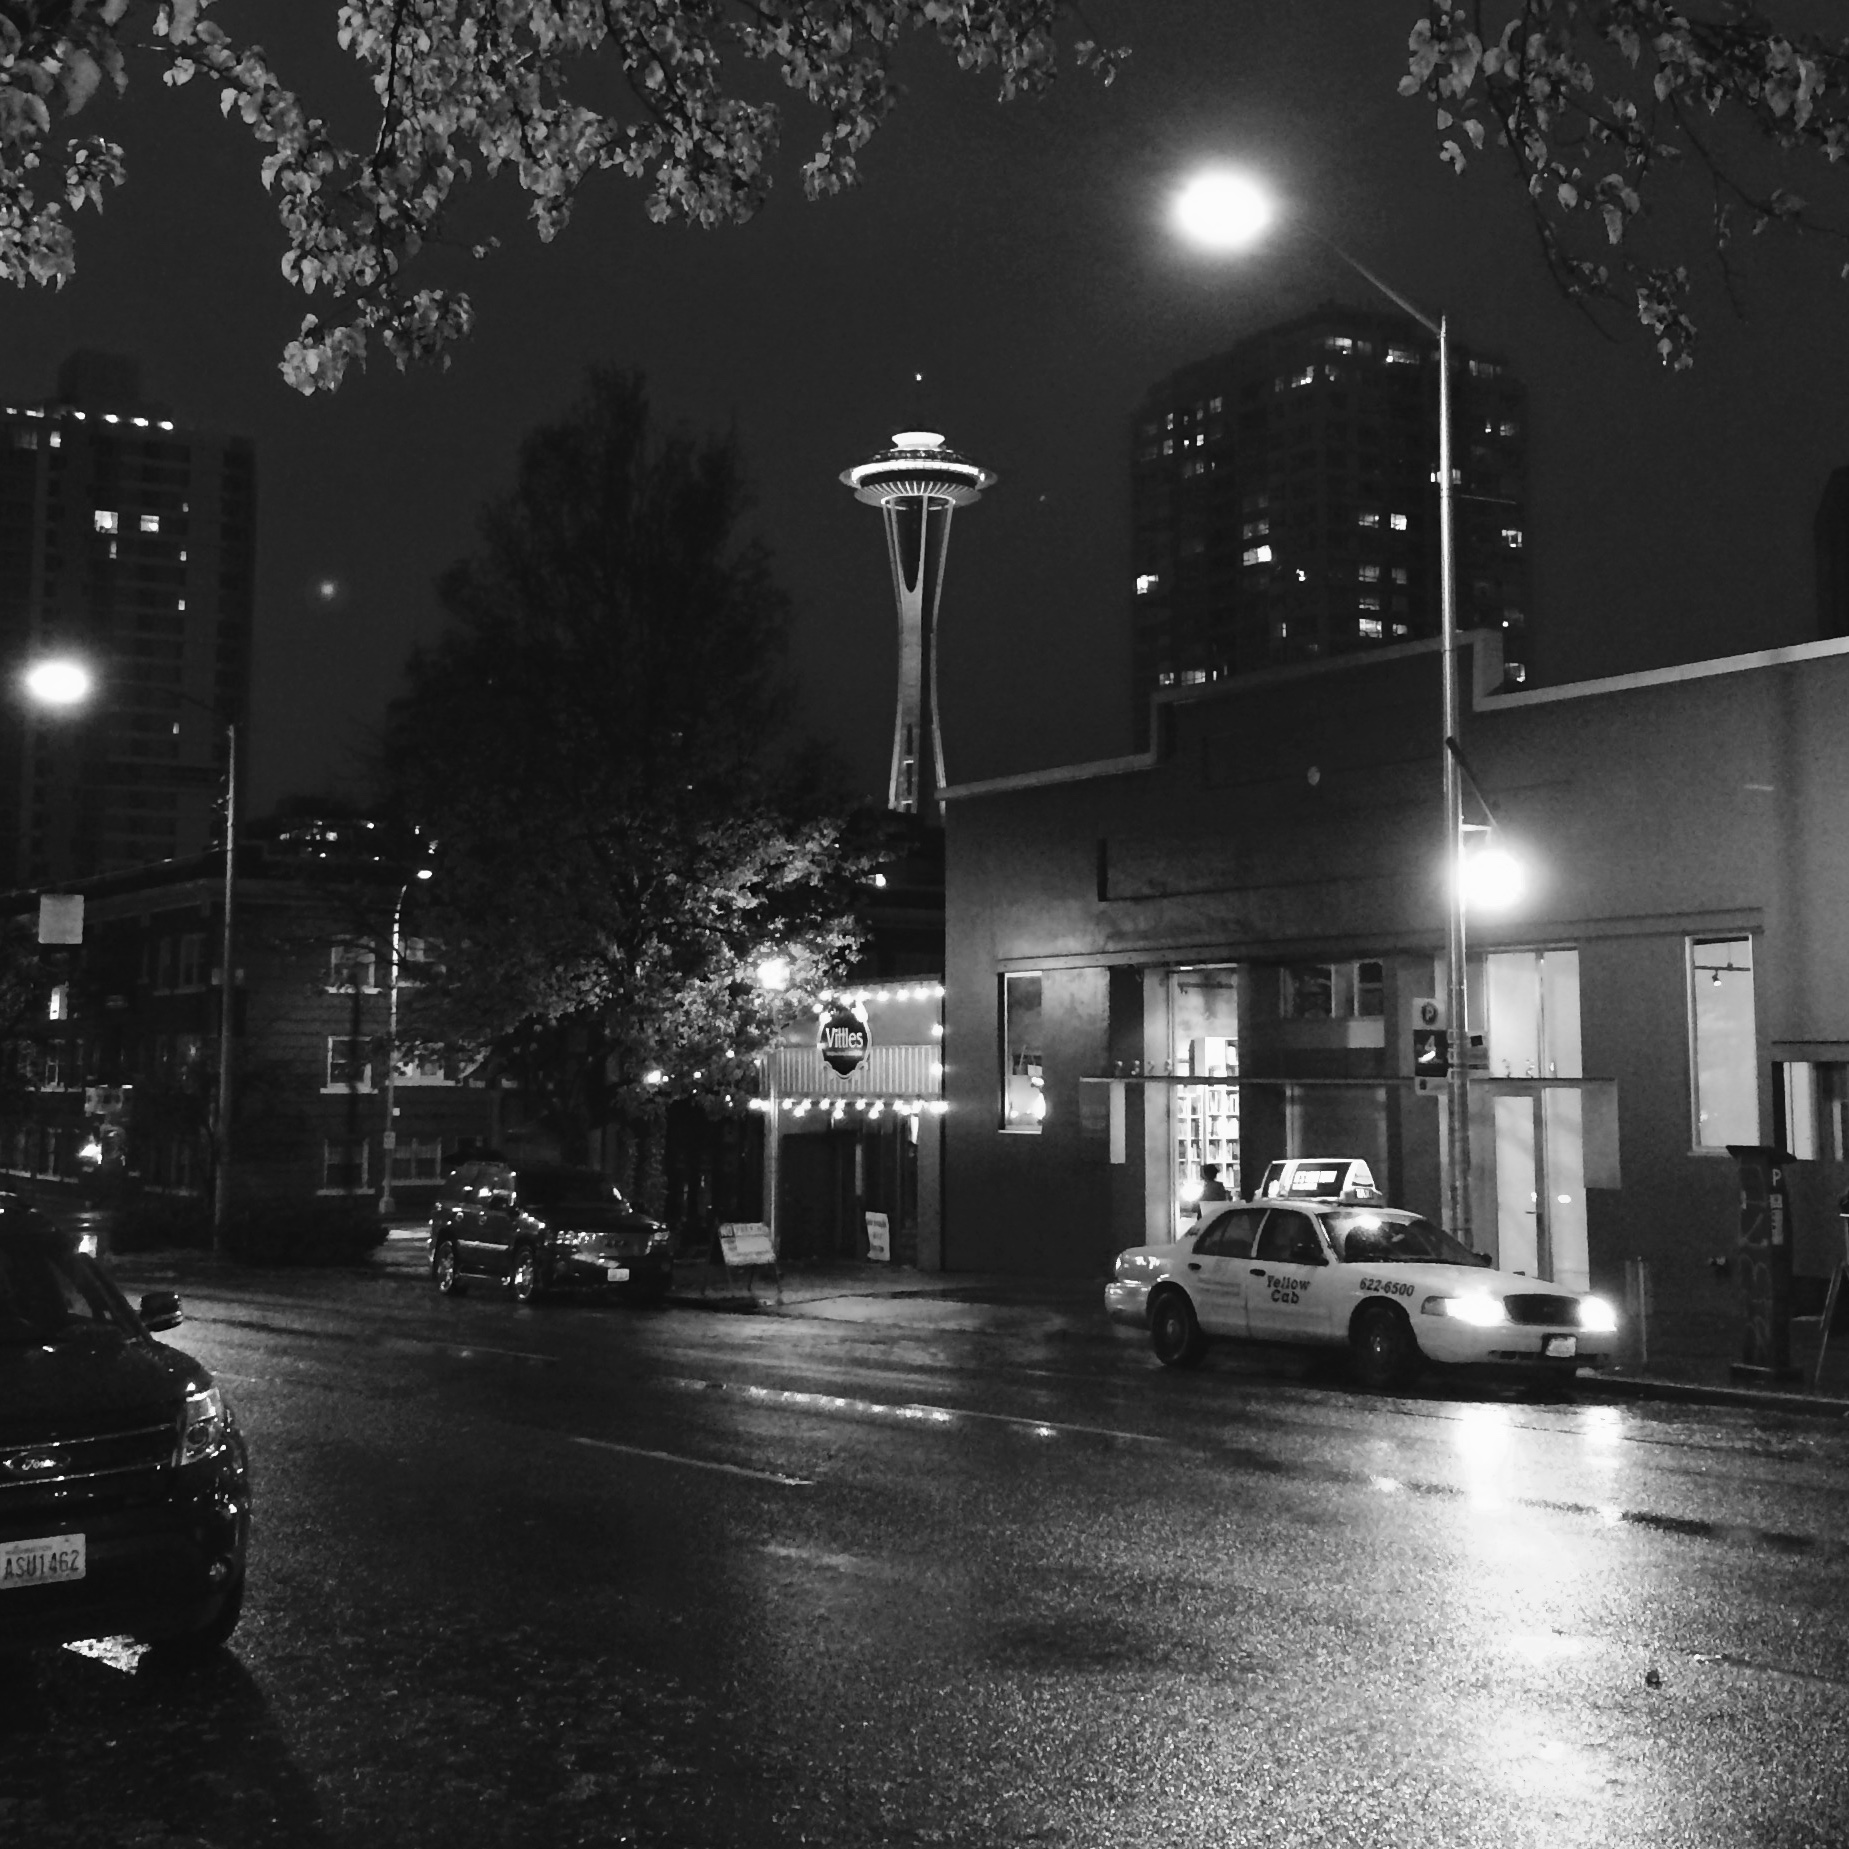 A Seattle Icon at Night